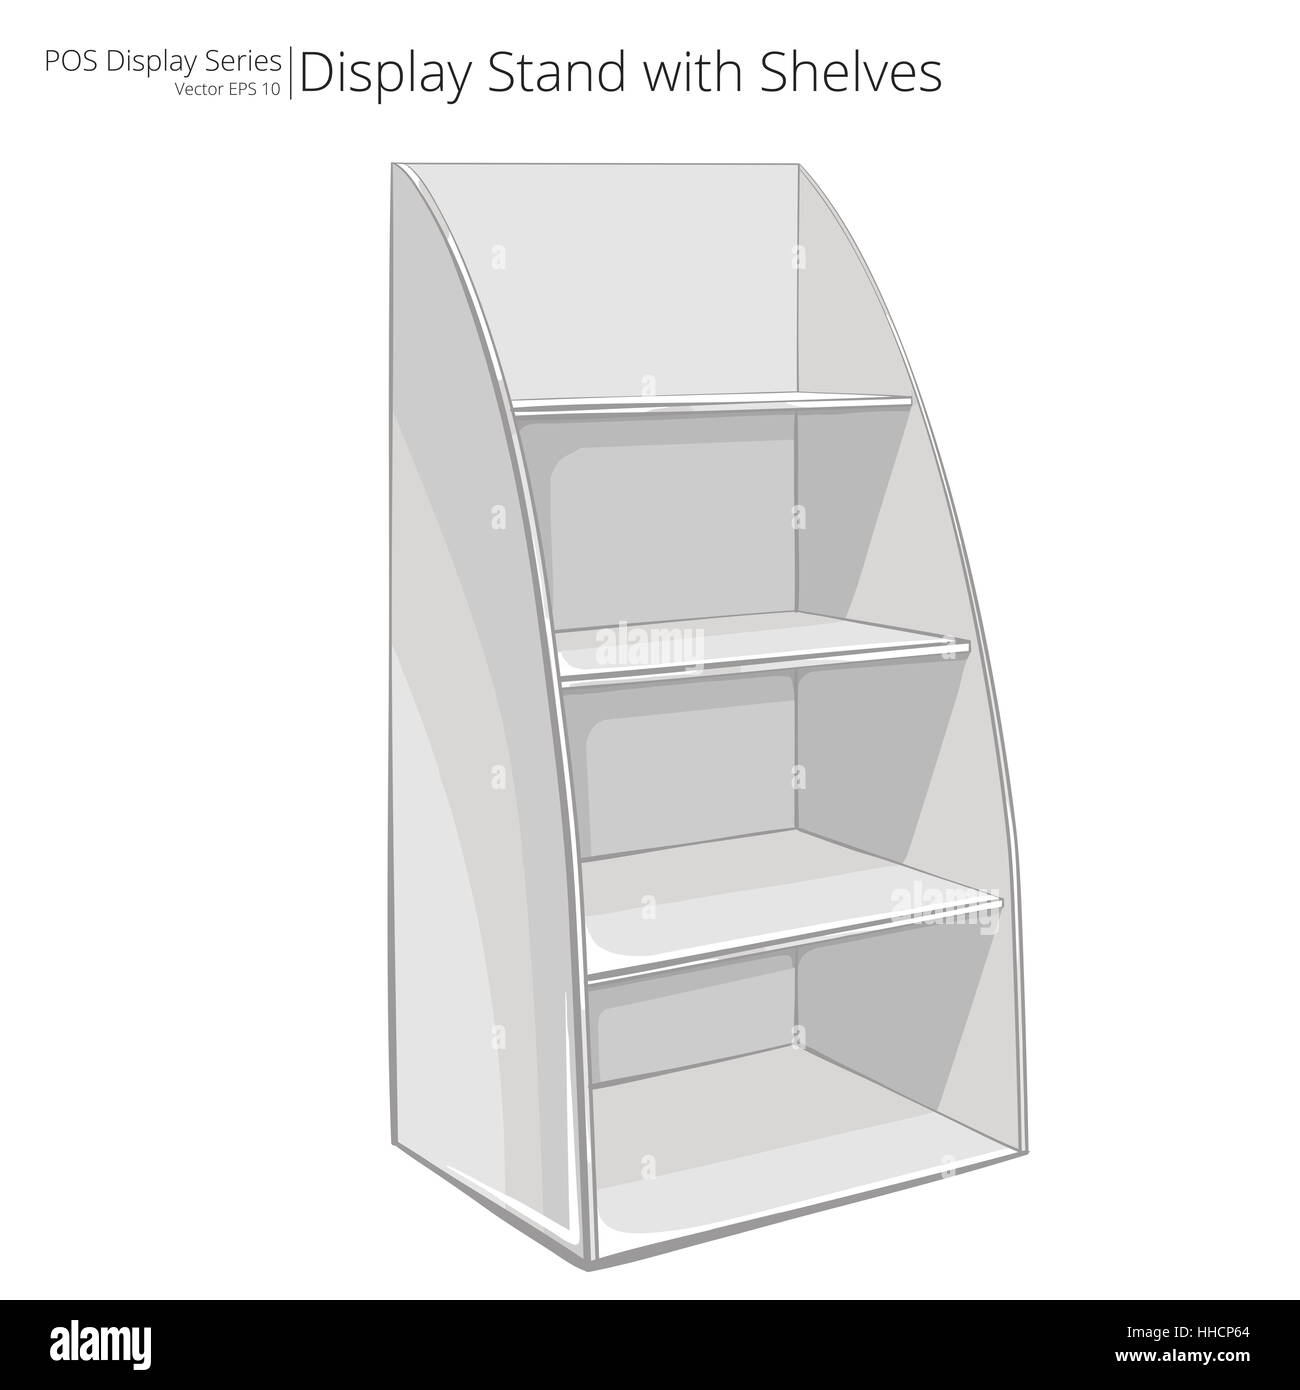 Vector, Illustration Of A Display Stand With Shelves Sketch